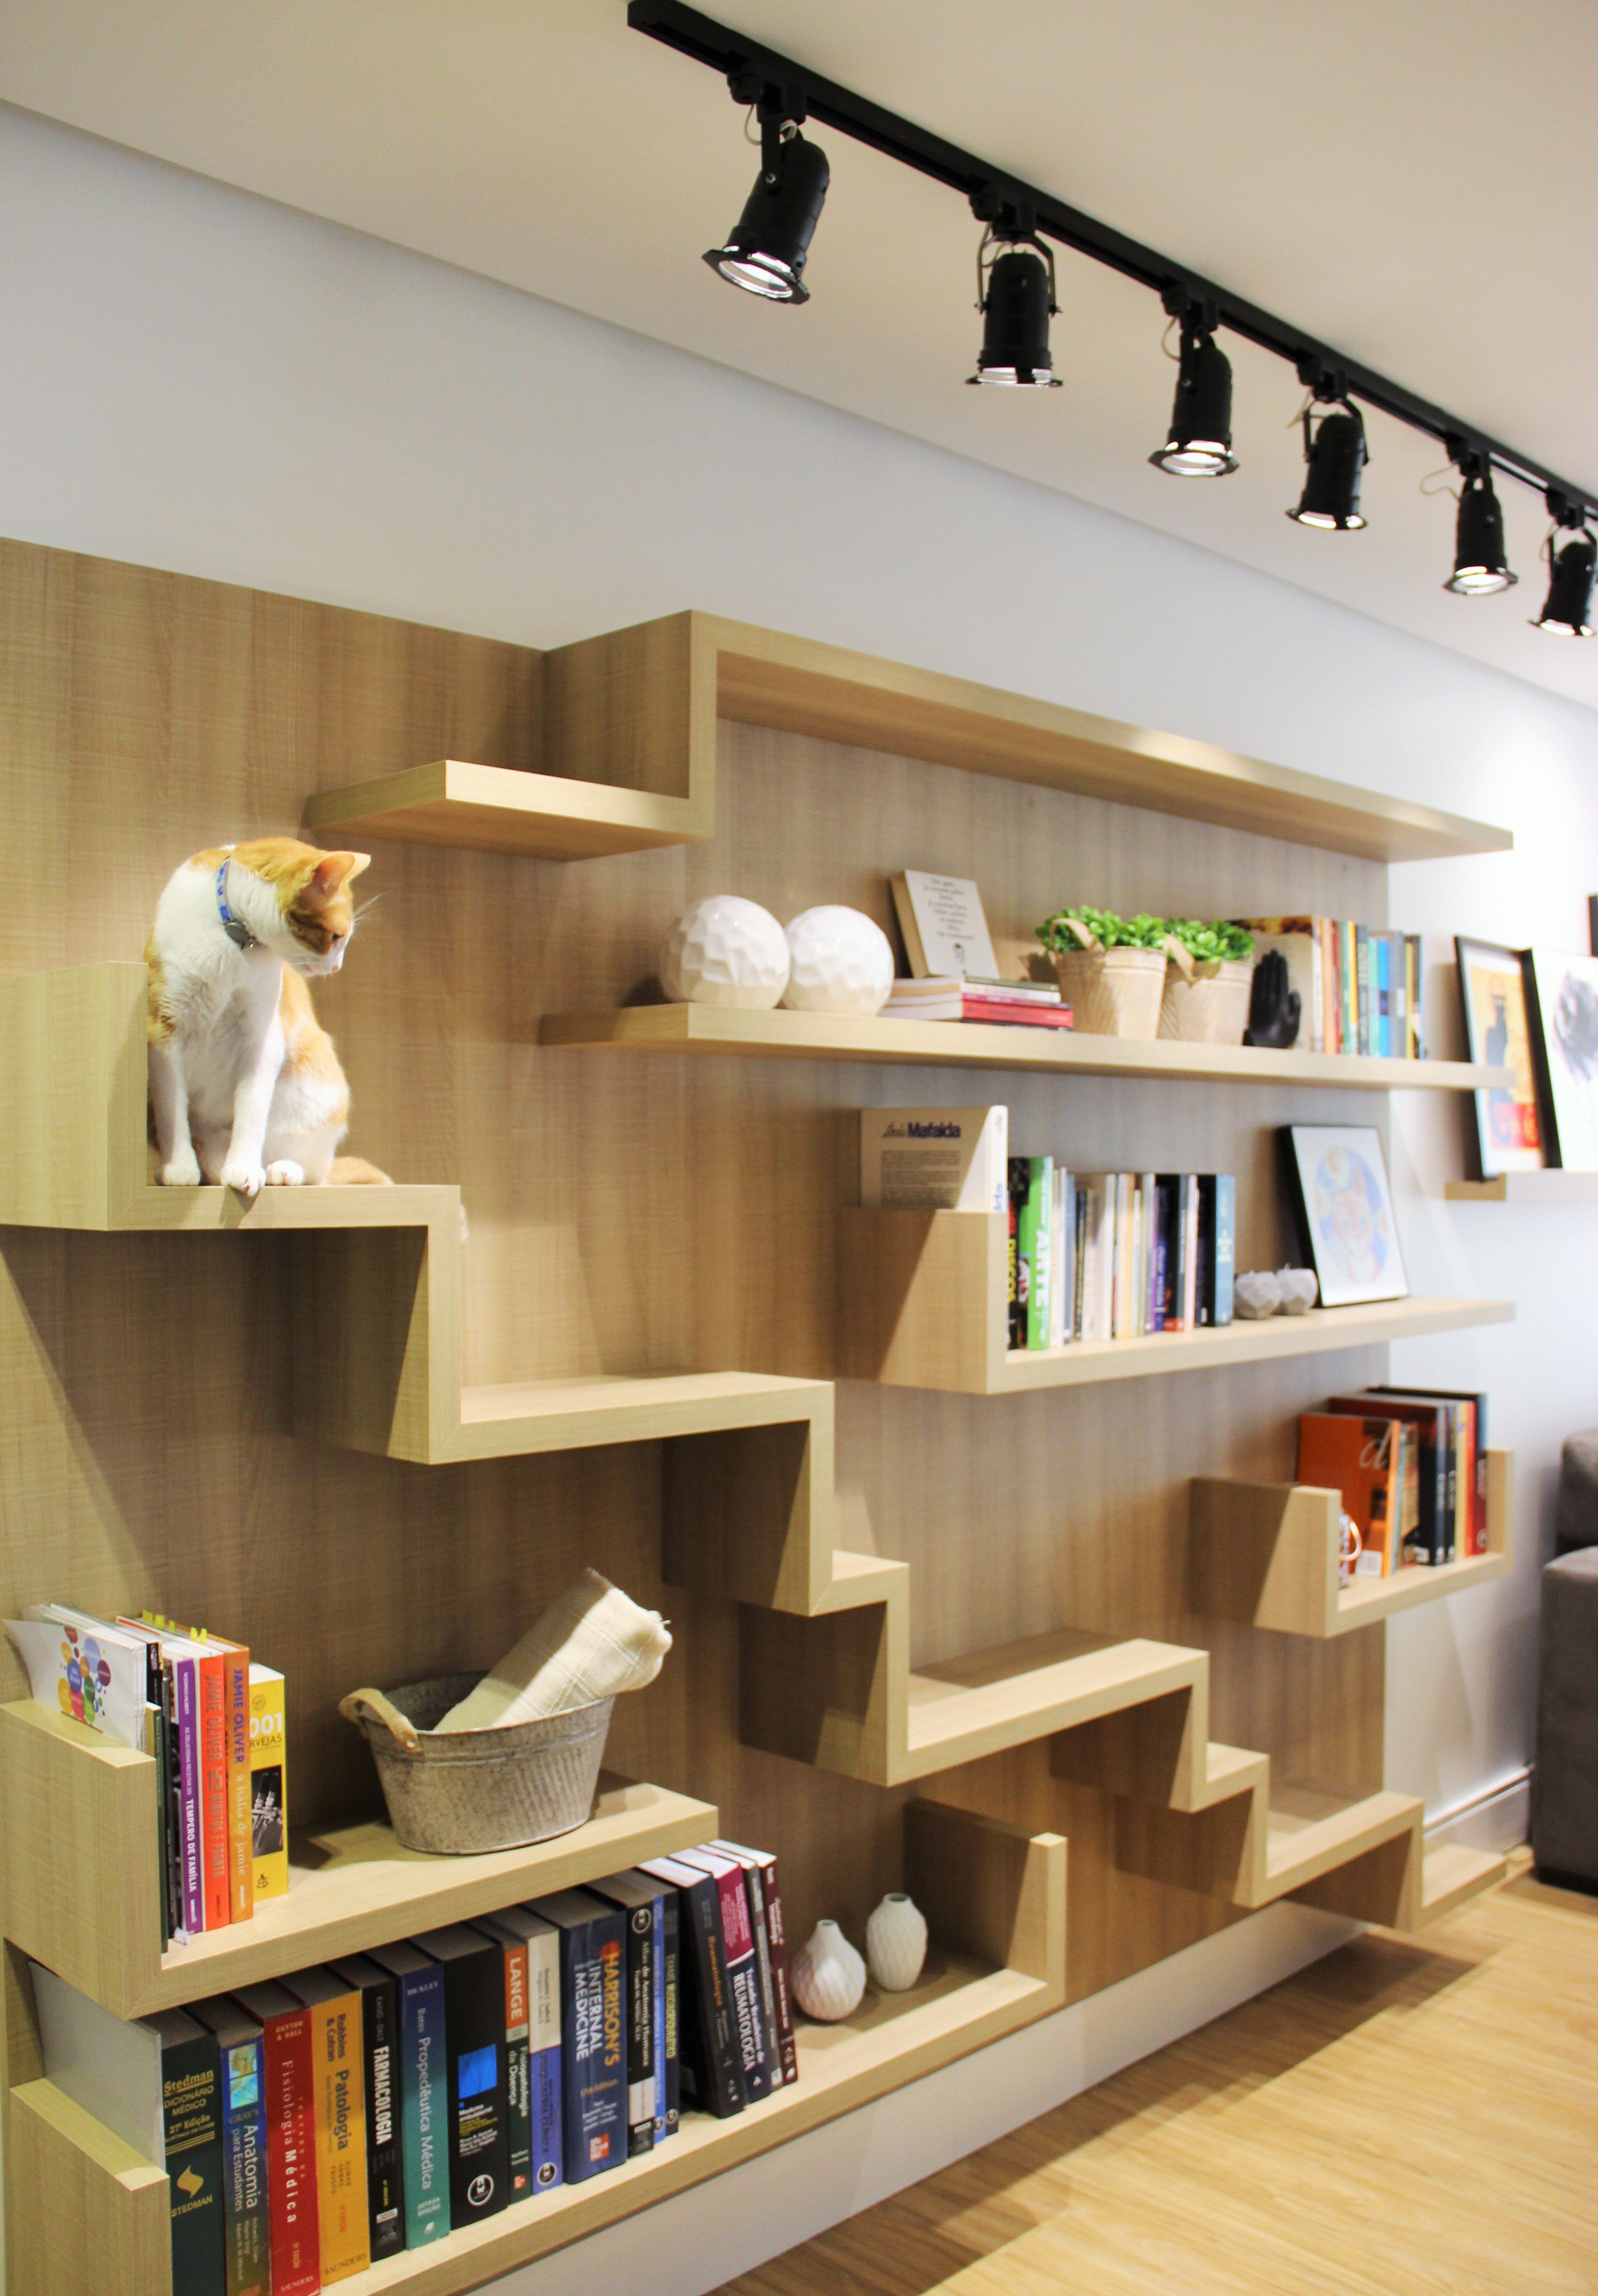 Pin by Lily Rose on Apartments in 2020 Cat wall shelves